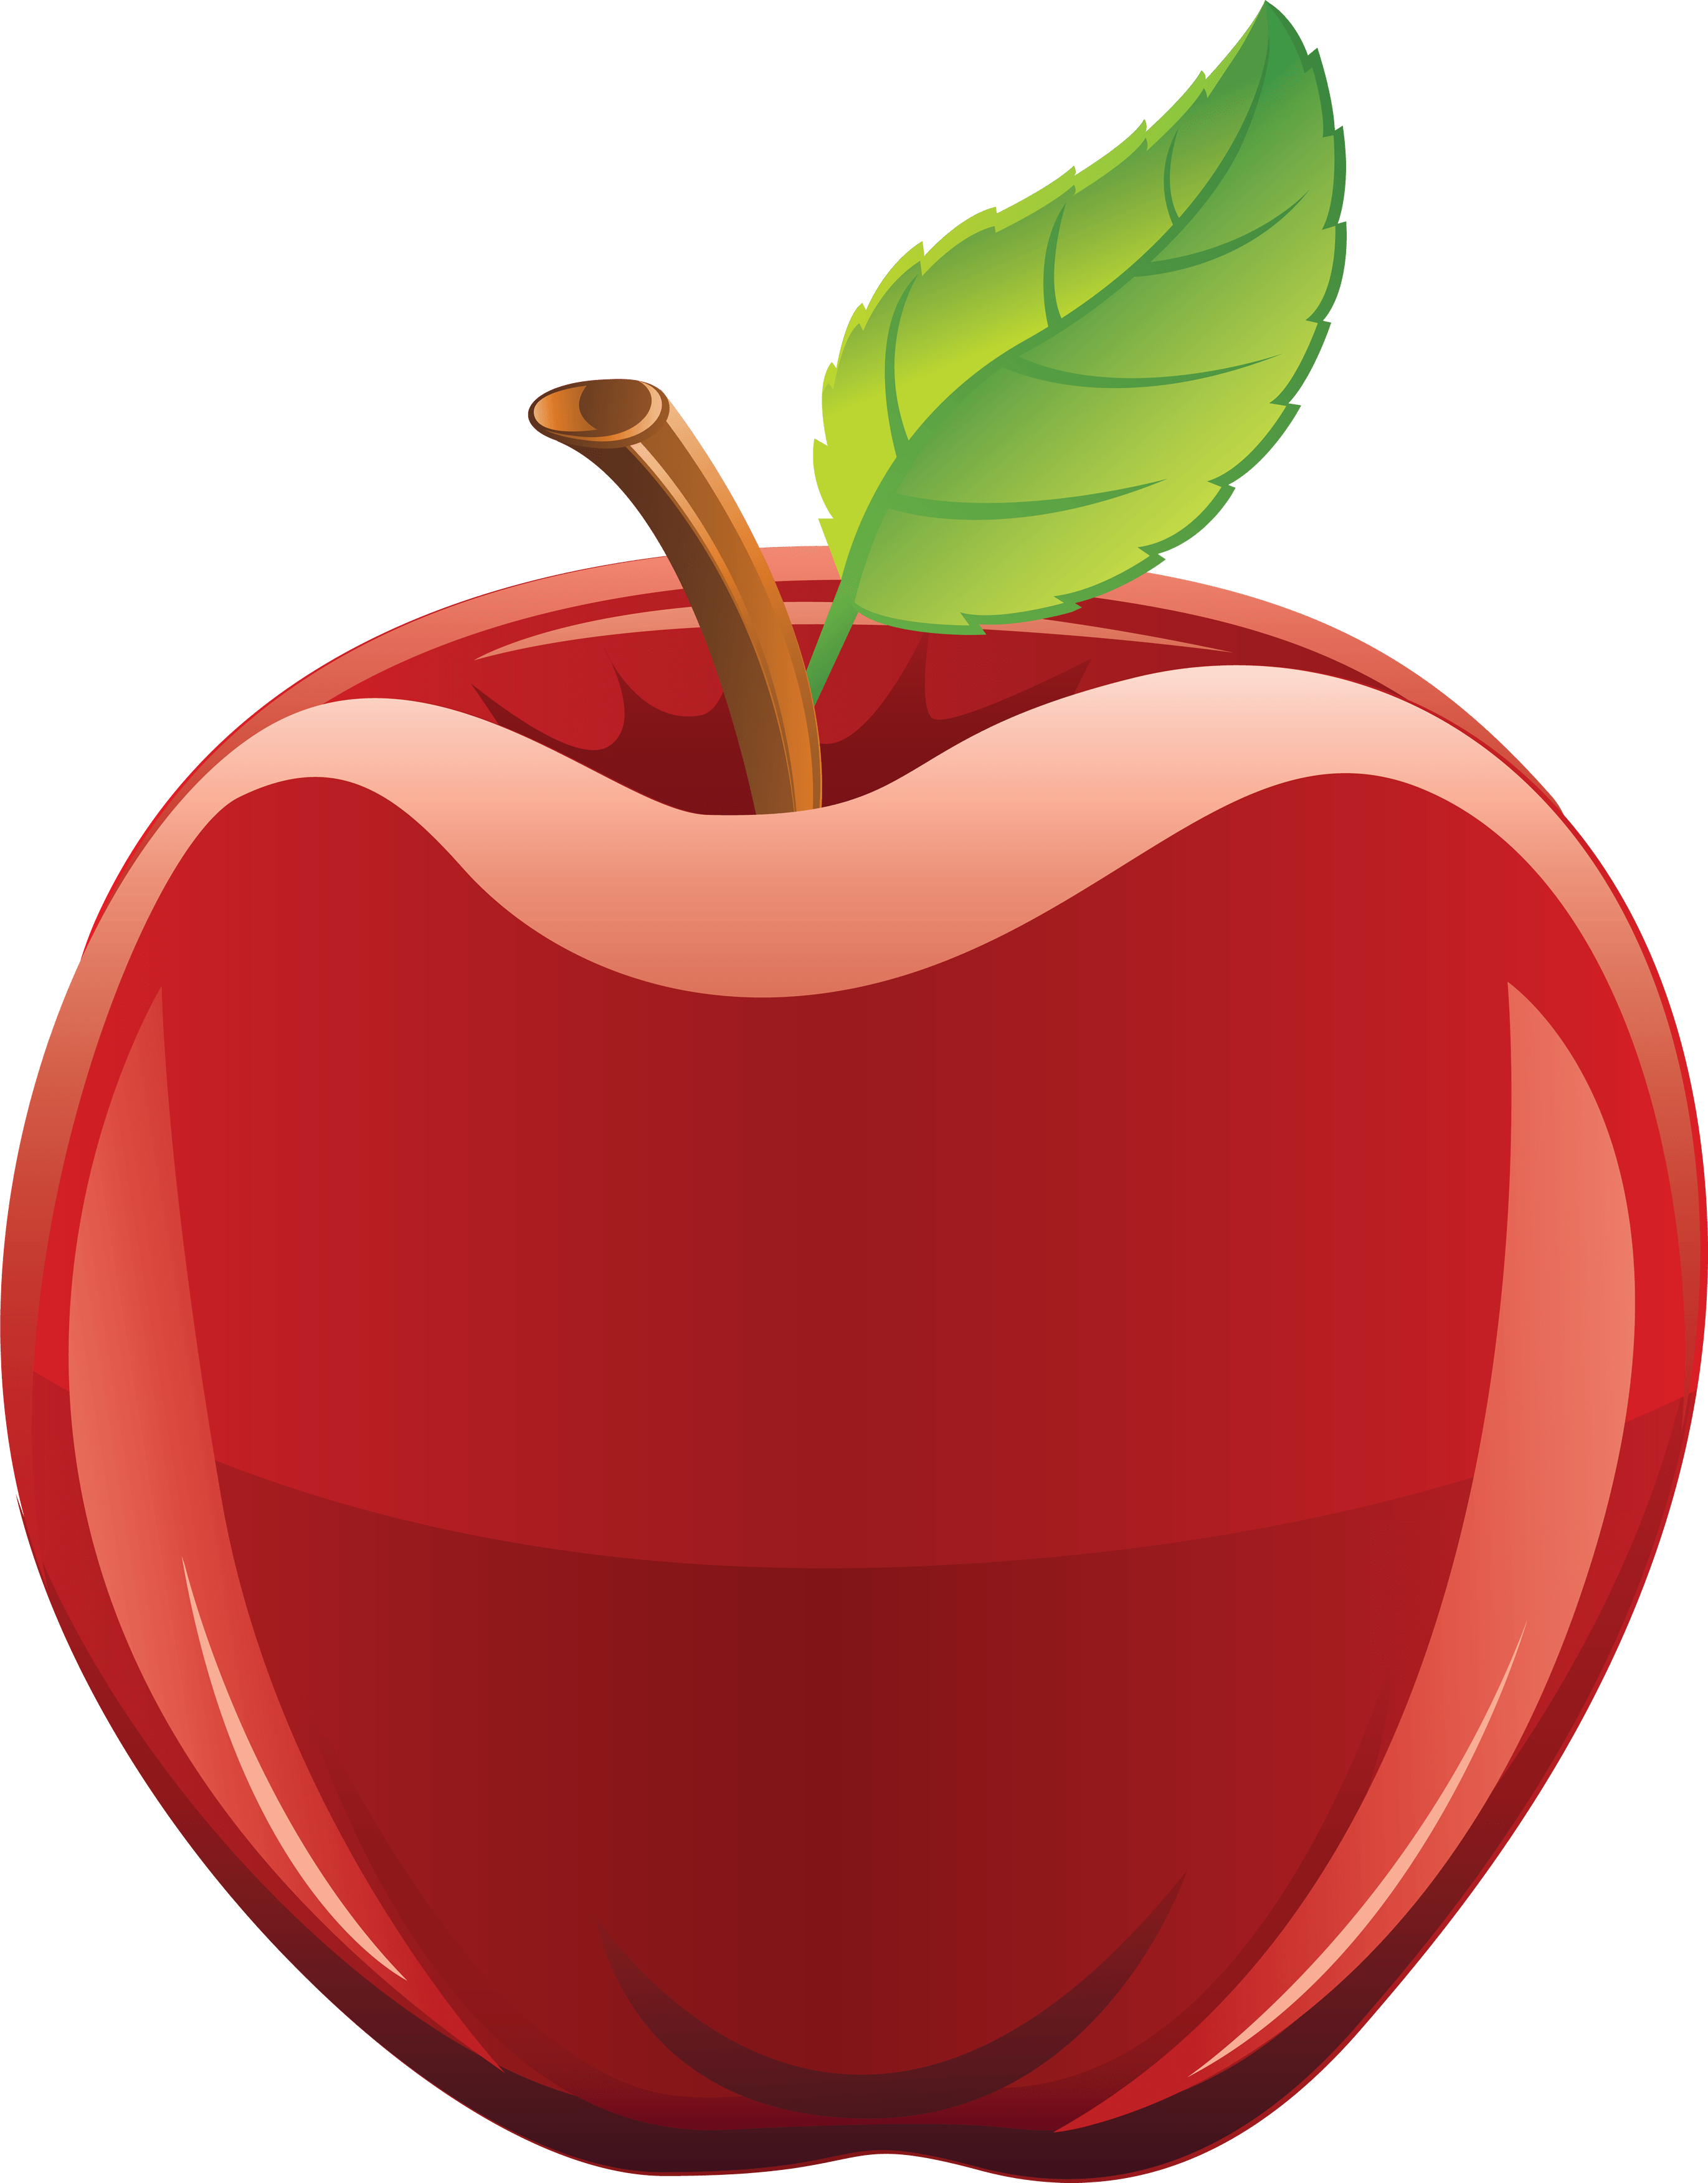 Clipart picture of a apple vector transparent library 18 Red Apple Png Image vector transparent library